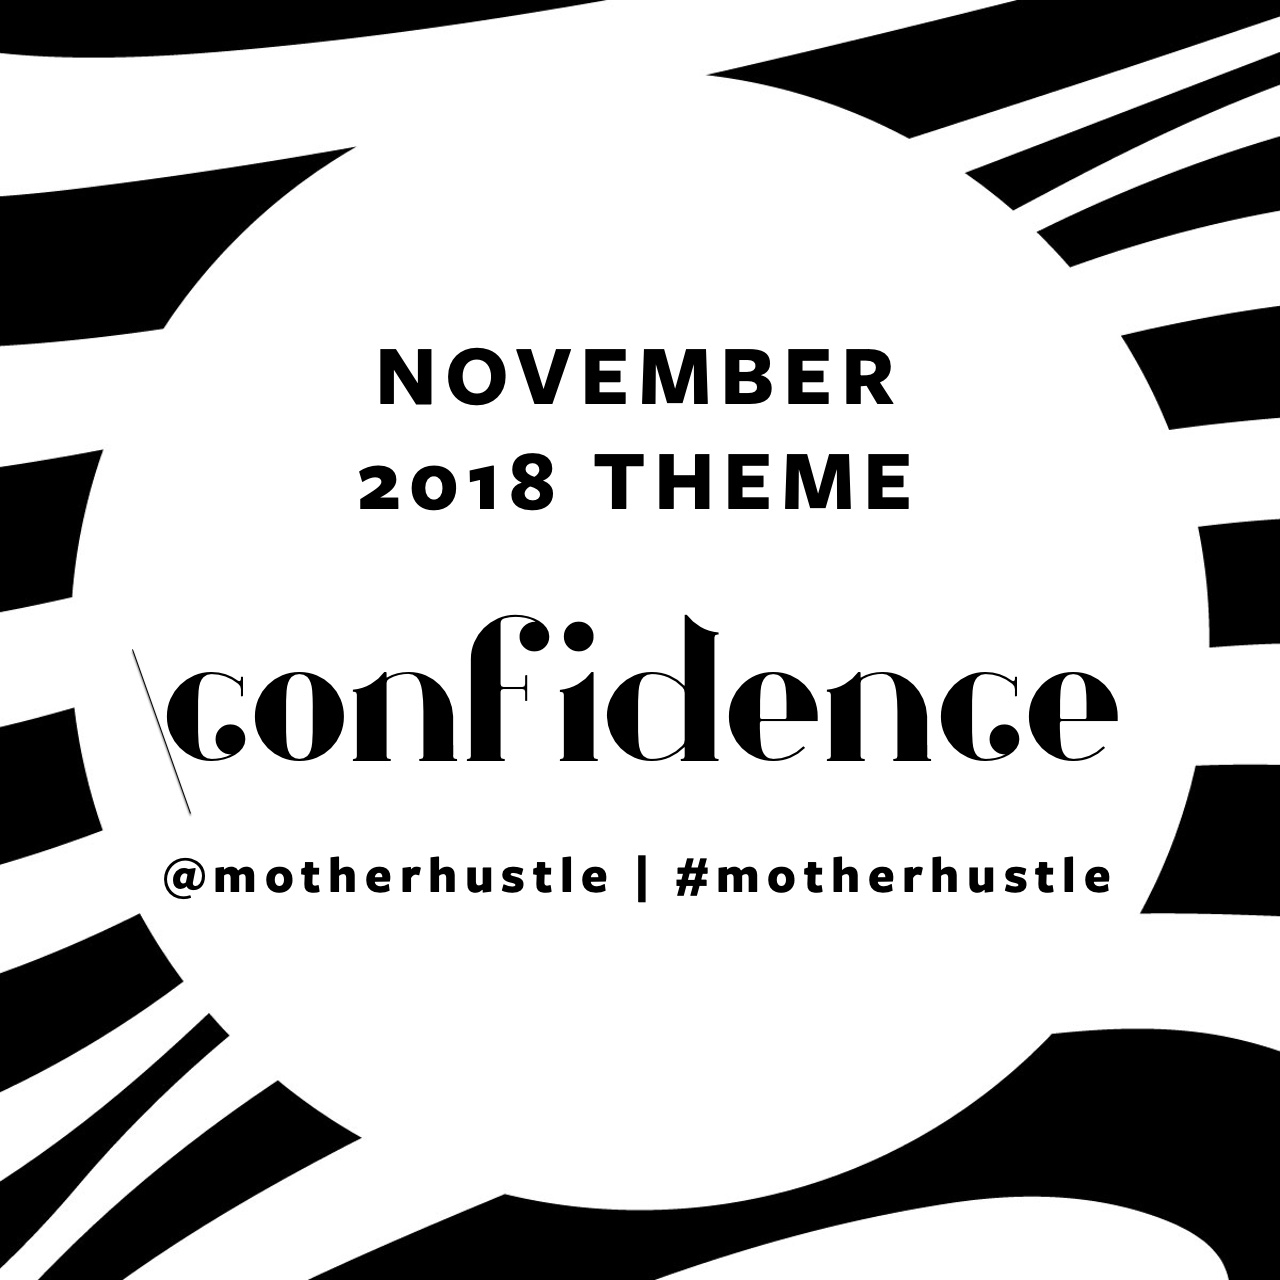 MotherHustle Theme November 2018 - Confidence